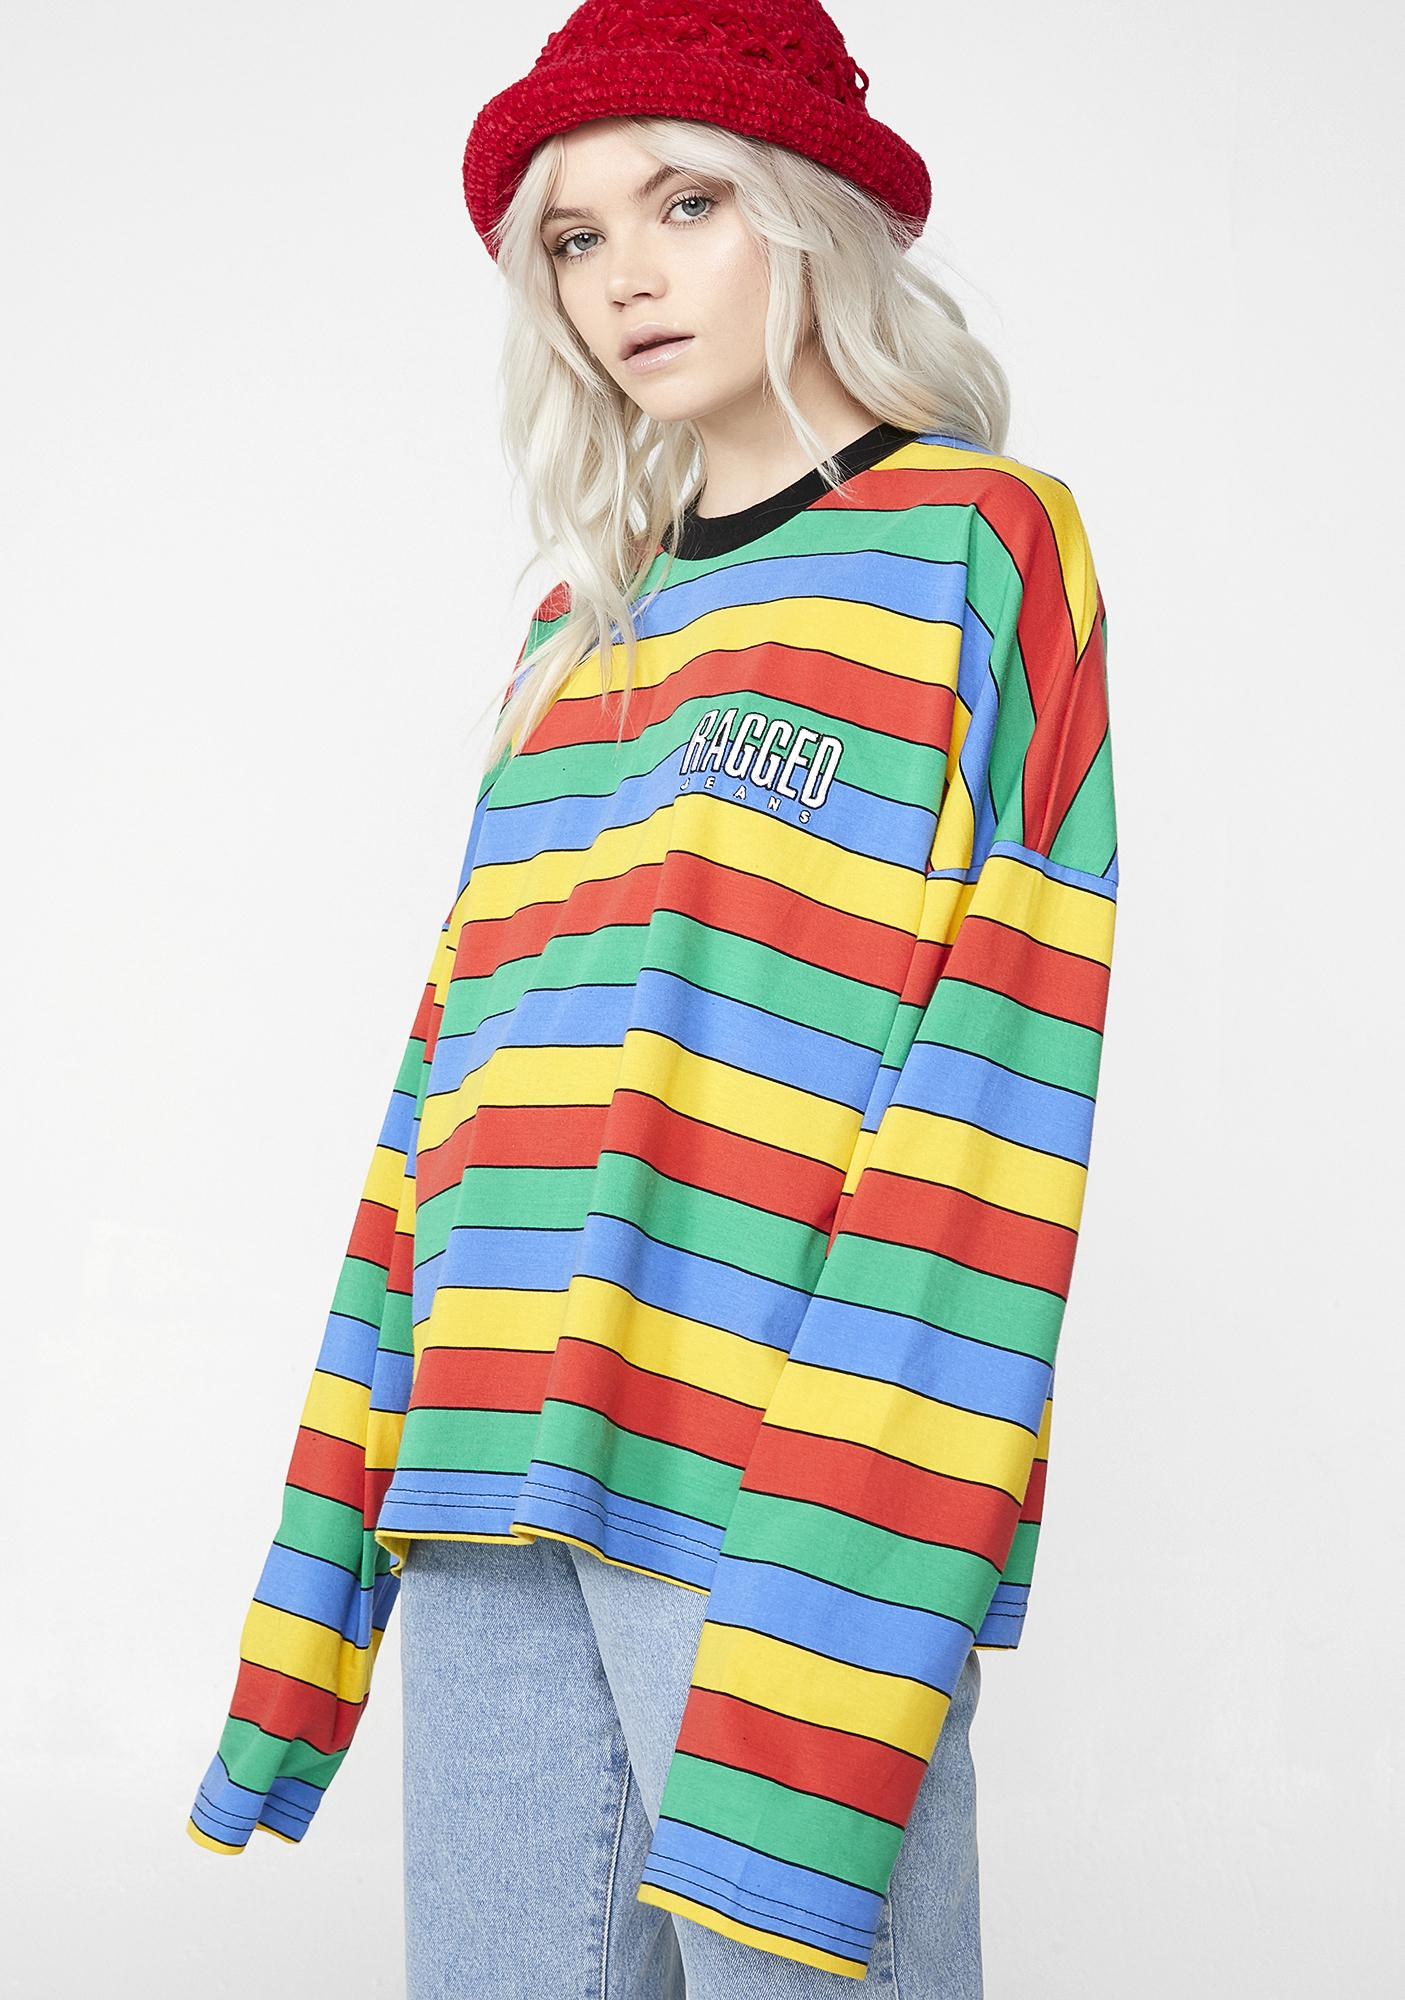 The Ragged Priest Primary Tee